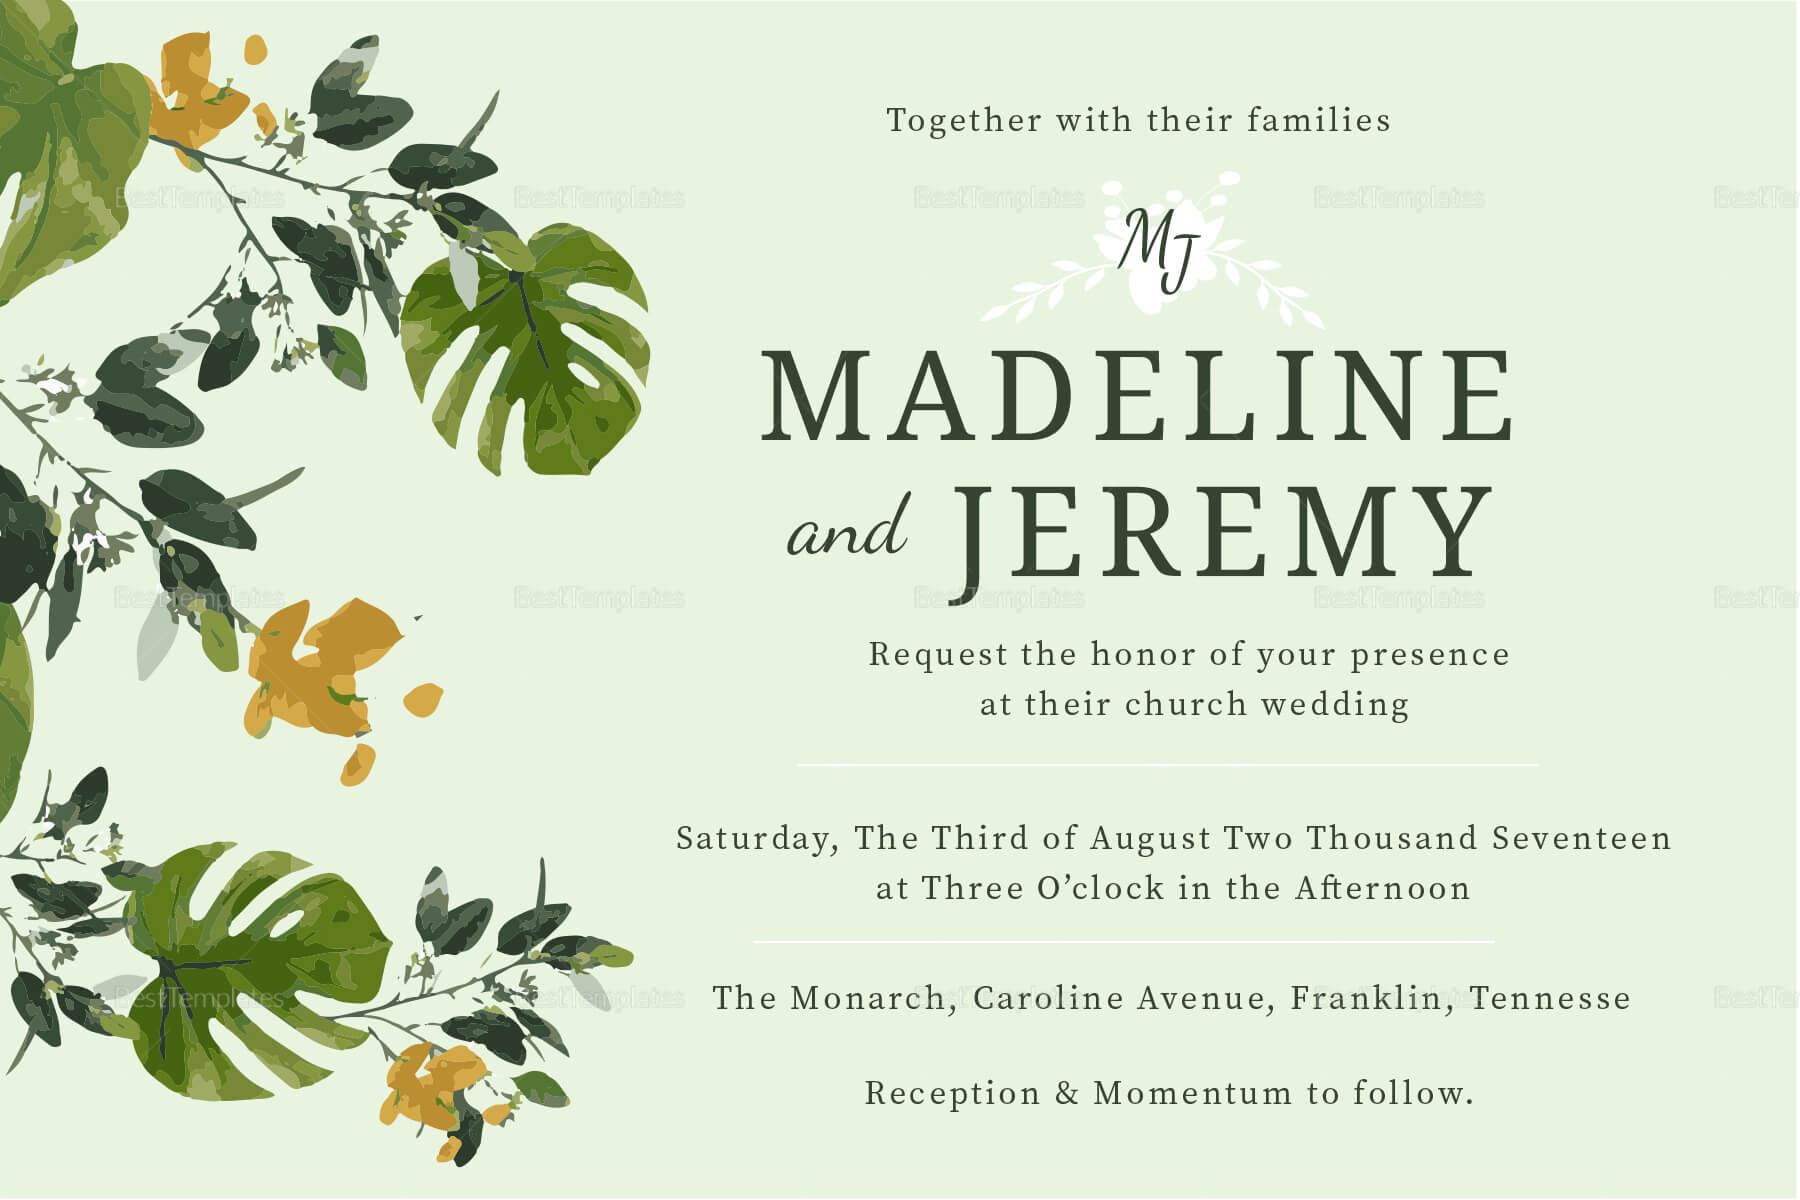 Church Wedding Invitation In Landscape And Portrait In Church Wedding Invitation Card Template